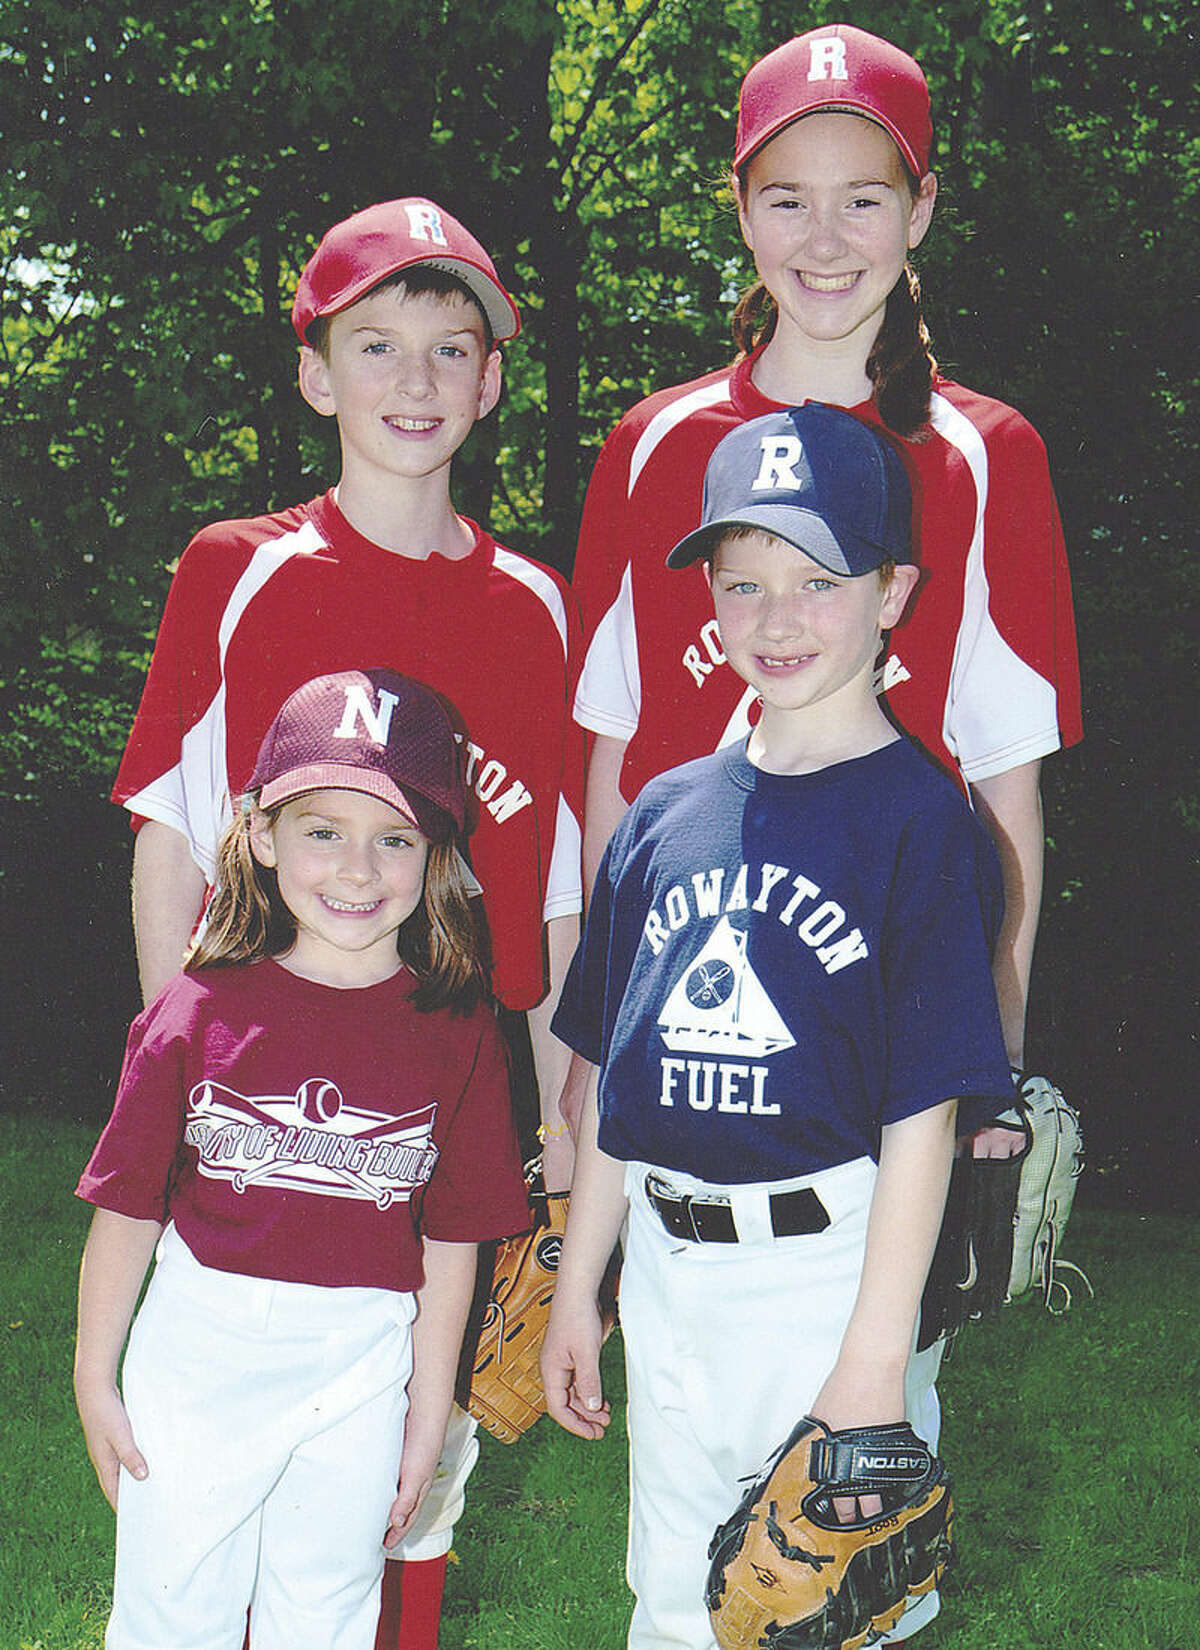 Contributed Photo The Root's Griffin, top left, Megan, top right, Lindsay, bottom left and Kyle pose together in their baseball uniforms in 2010.